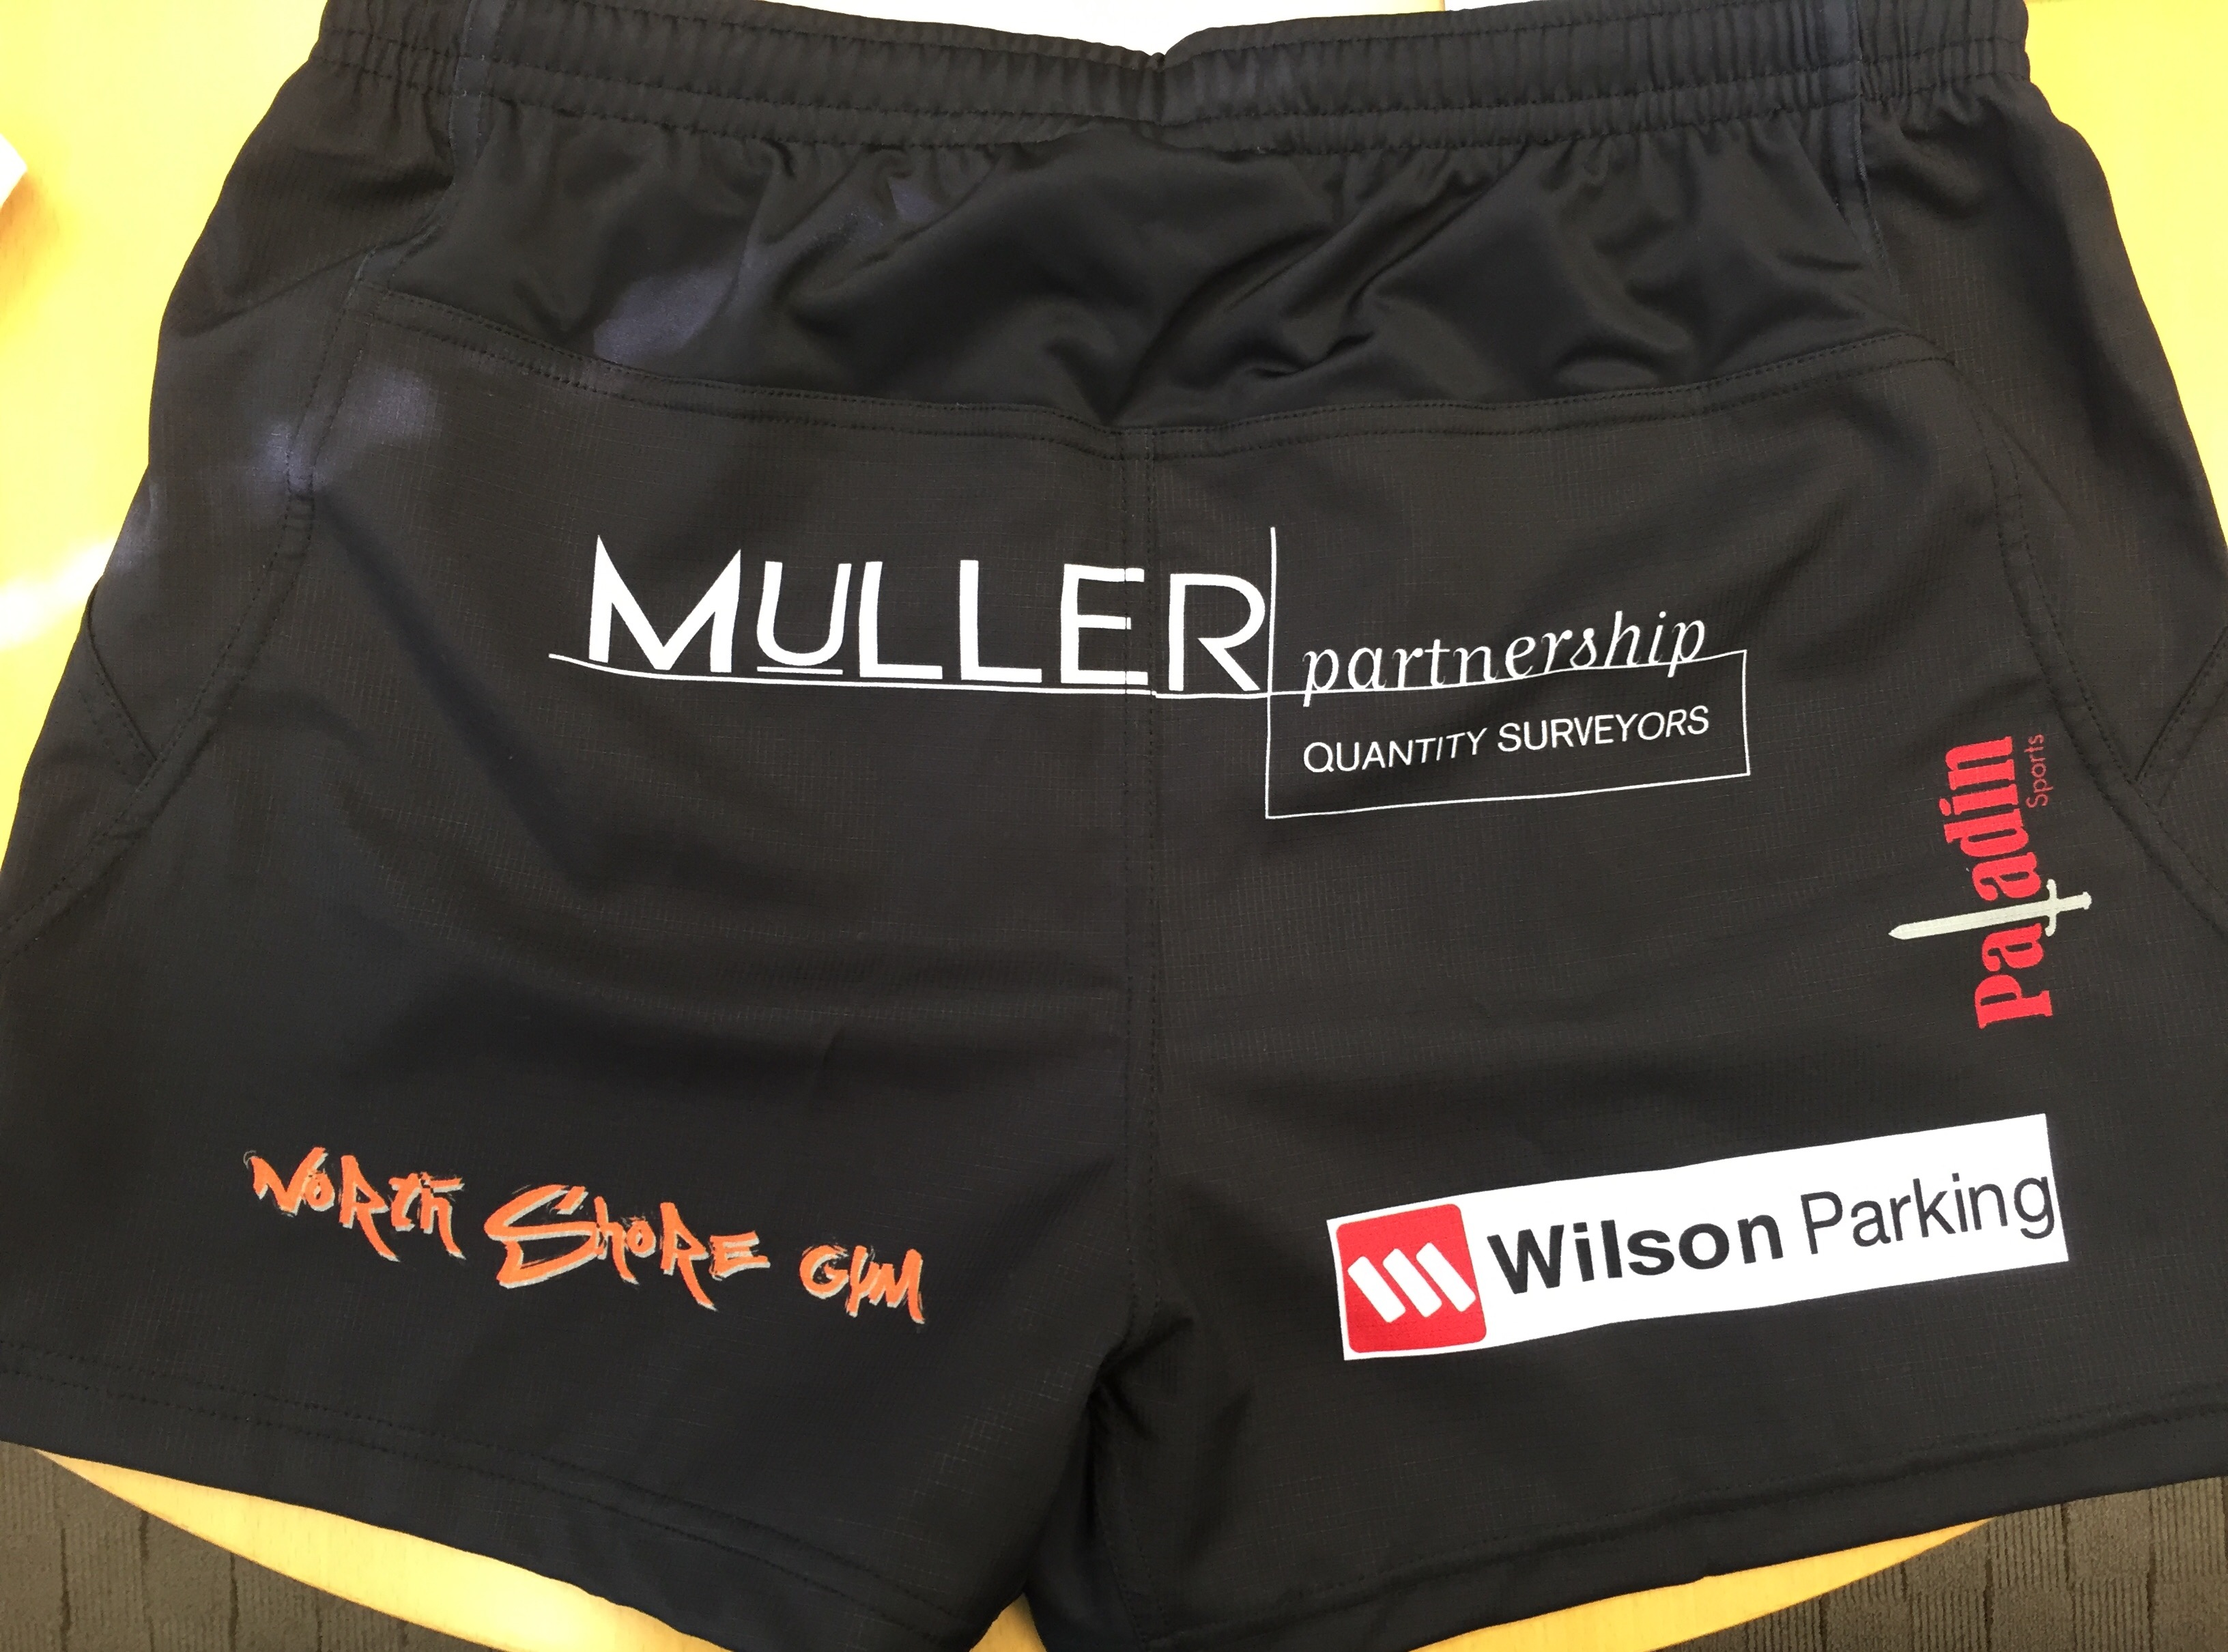 Muller Partnership are again silver sponsors of the Norths RFC in 2018. Currently Norths are unbeaten after 3 rounds of the Shute Shield club competition